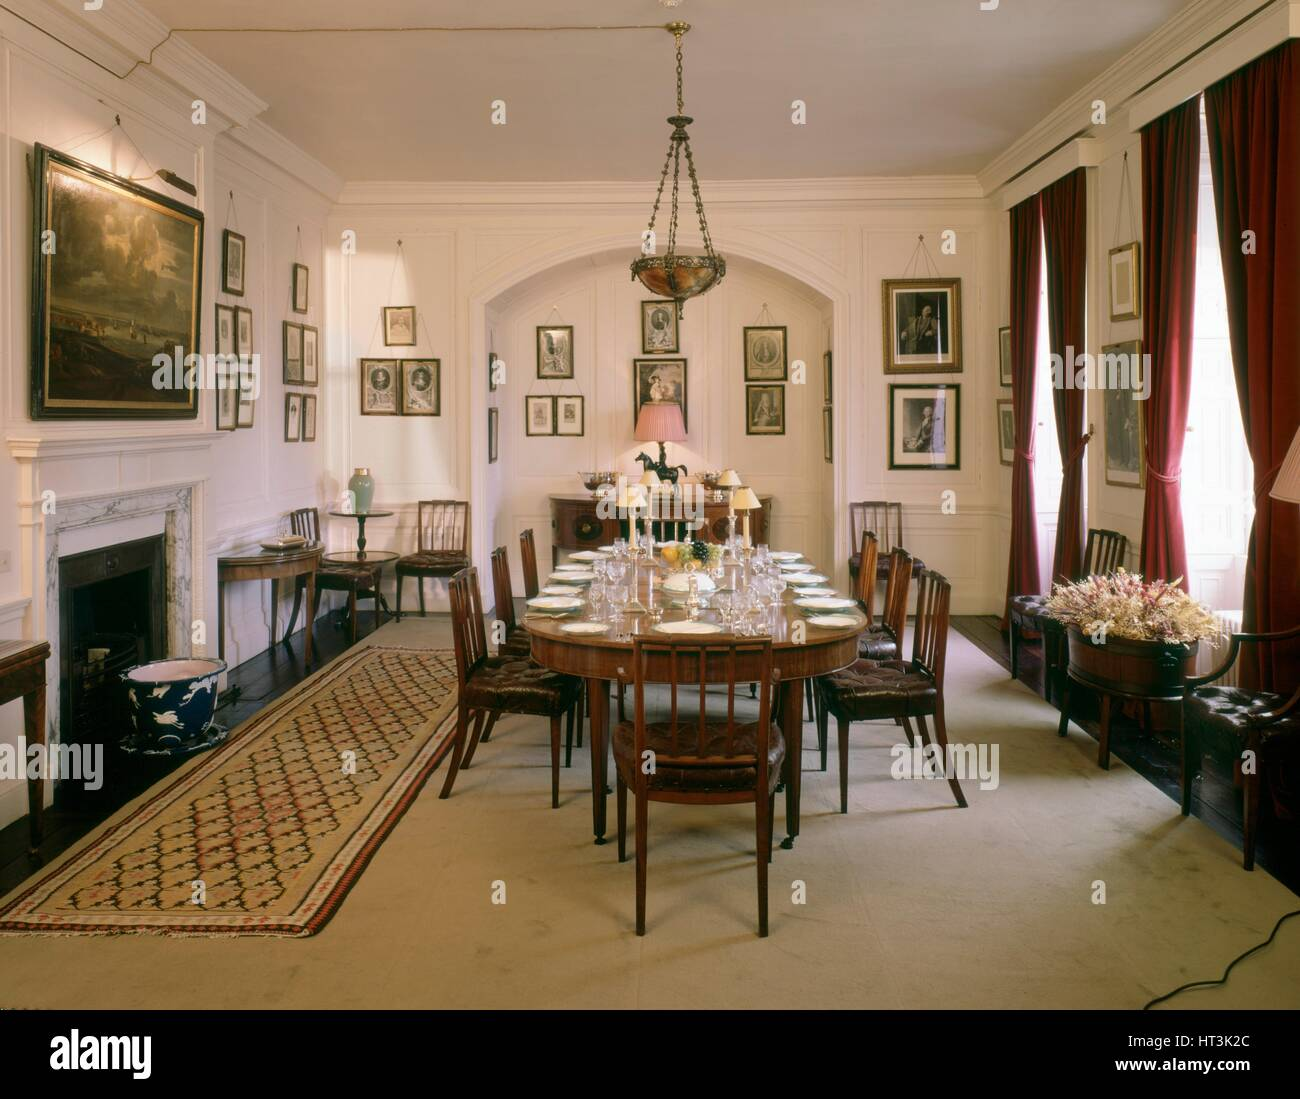 The Dining Room, Walmer Castle, c1990-2010. Artist: Nigel Corrie. - Stock Image